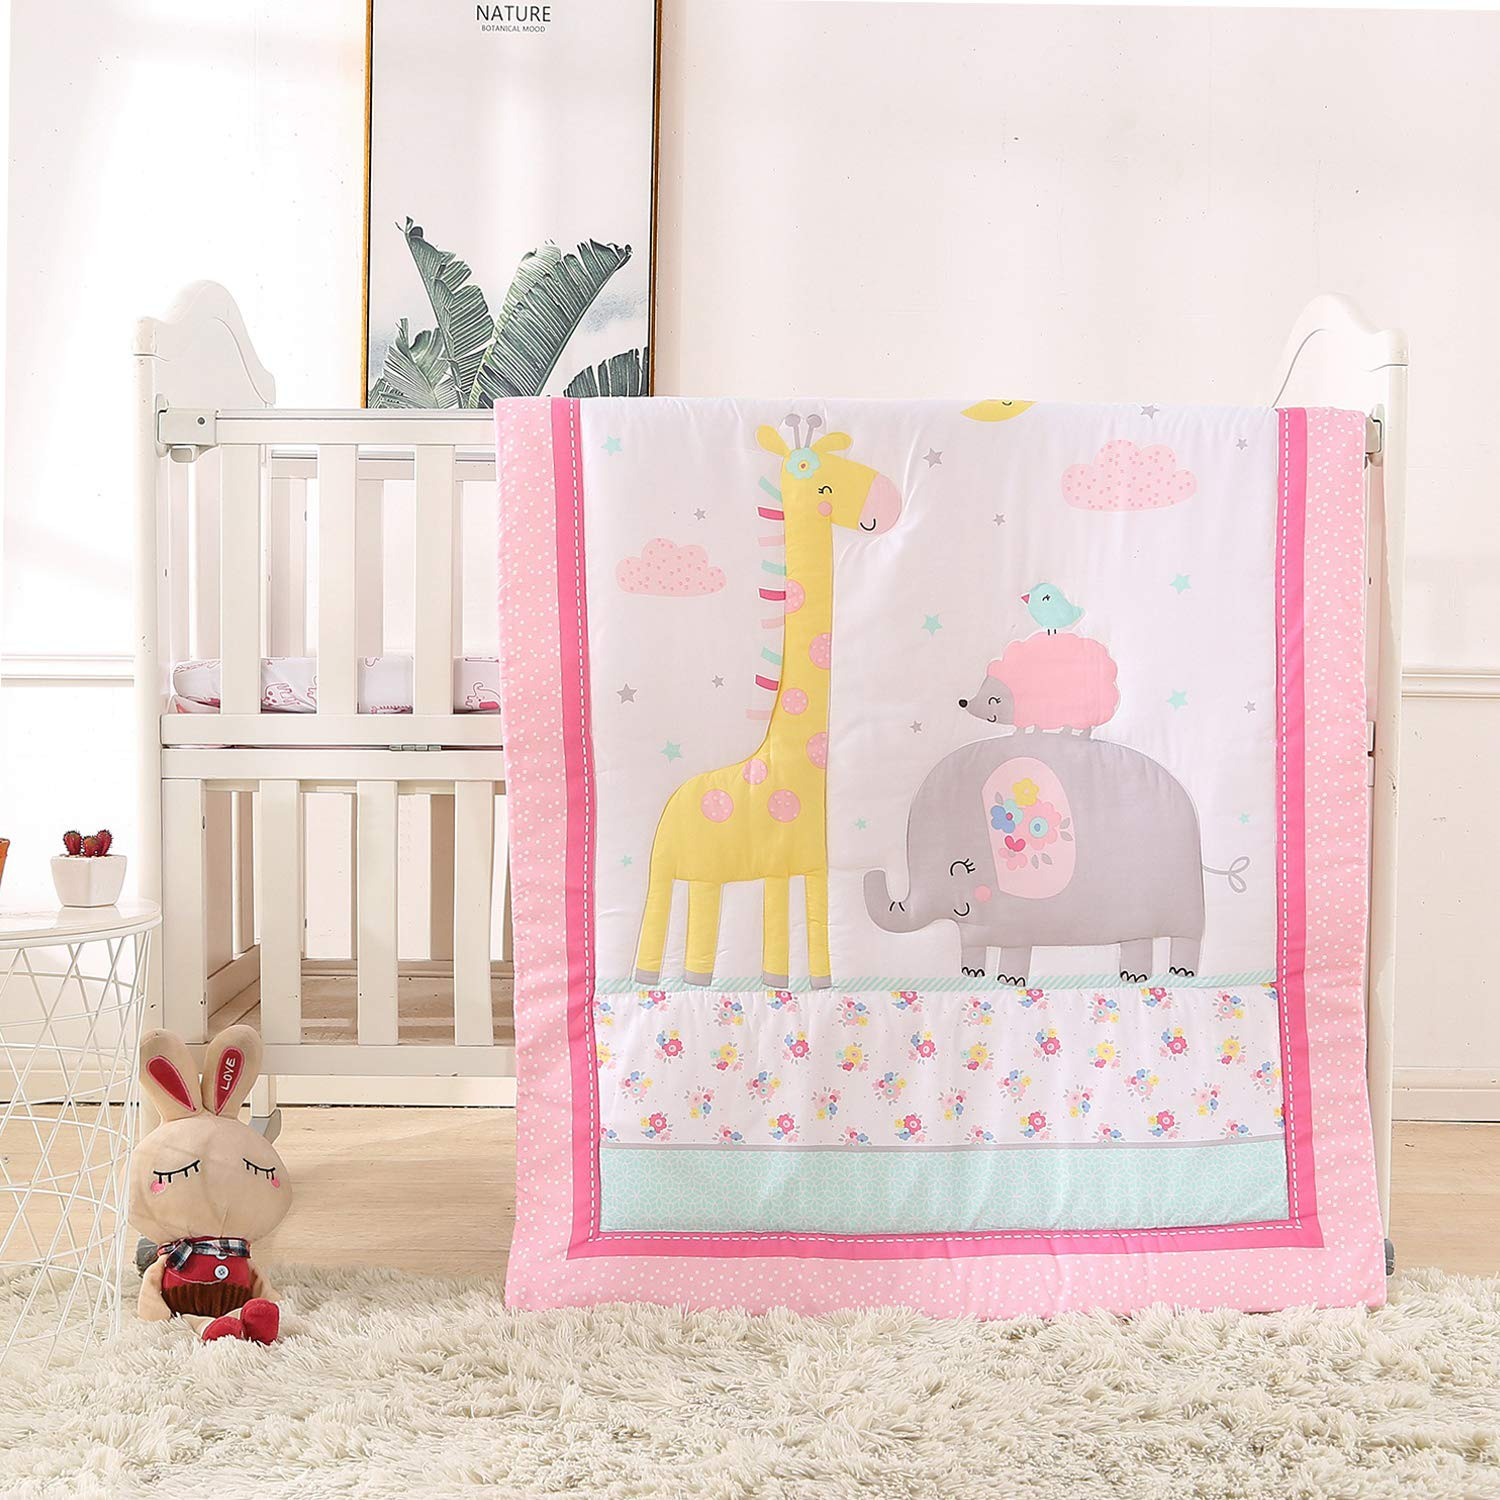 VIVILINEN Baby Crib Bedding Set for Boys 3 Pieces Grey Giraffe Elephant Originals Soft Toddler Nursery Bedding Sets with Crib Comforter Fitted Crib Sheet Crib Skirt for Standard Size Crib